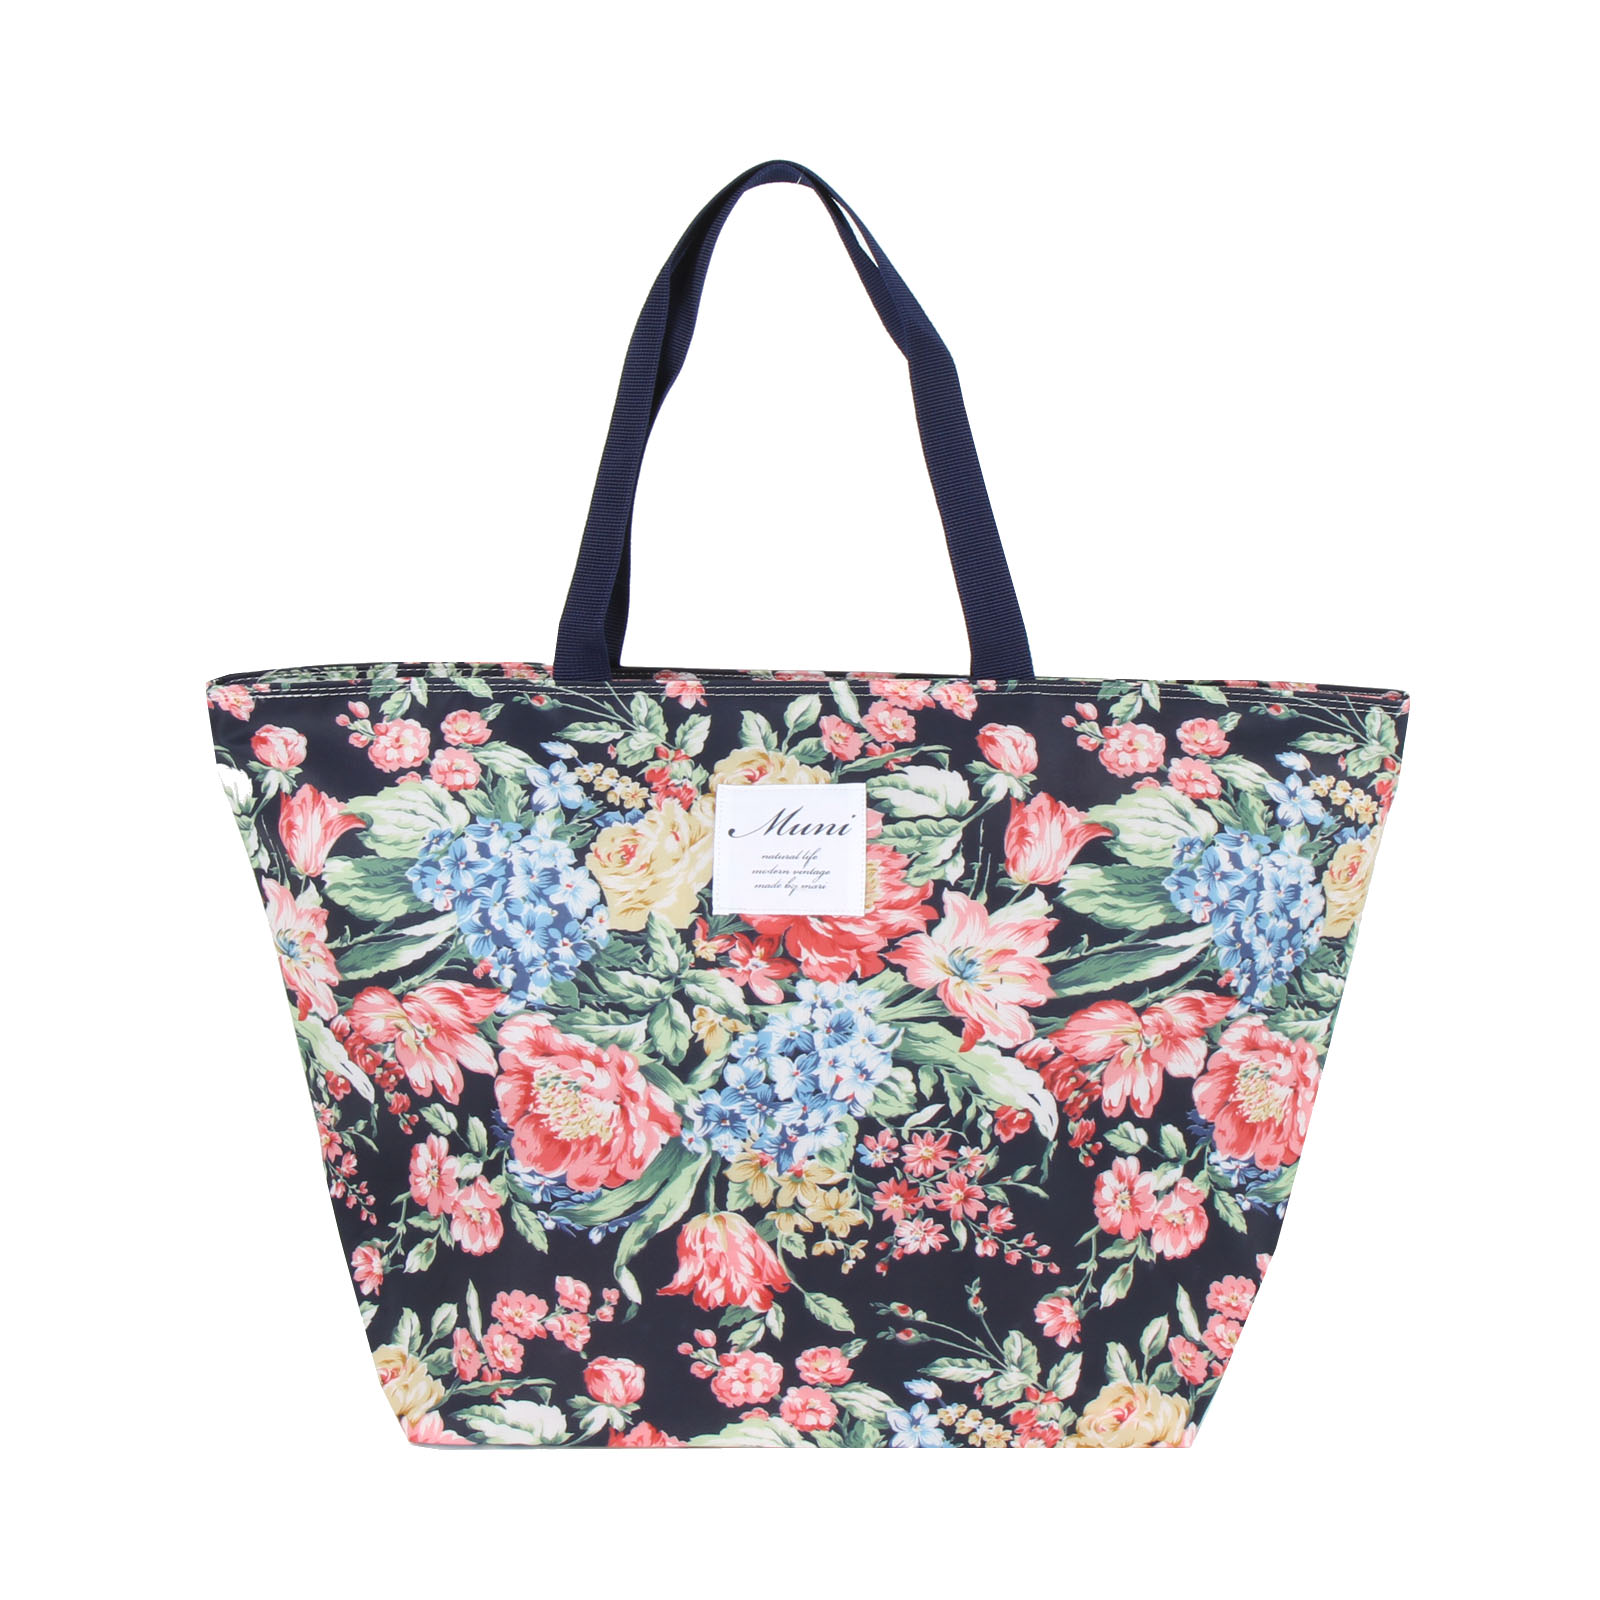 Flora Koh Muni Navy Blue Floral Large Shoulder Bagflorakoh